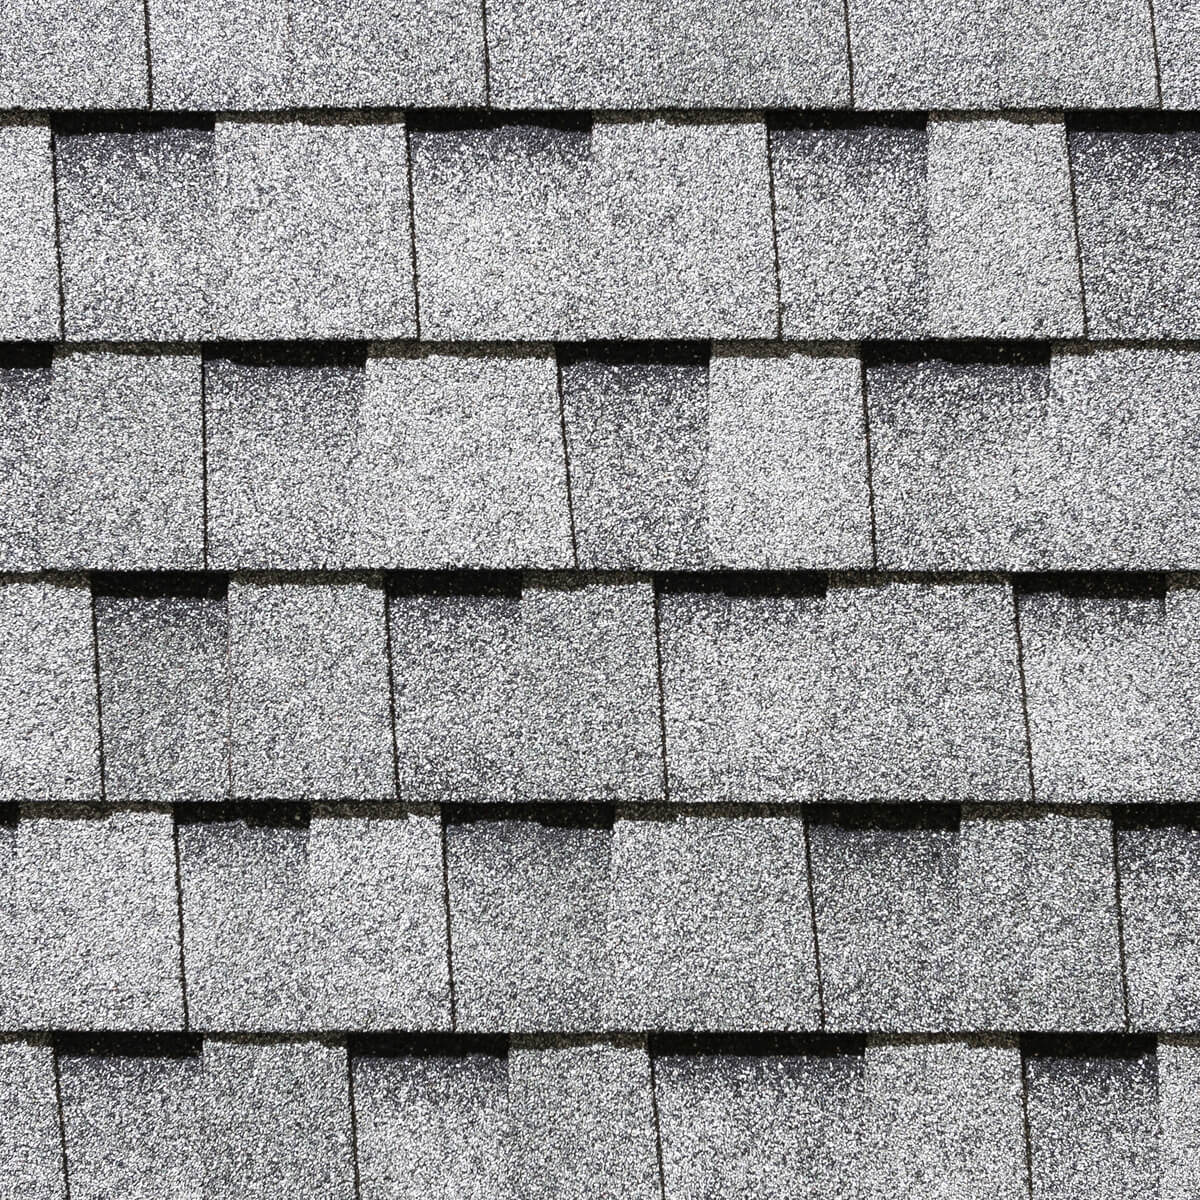 Mystique Laminated Roofing Shingles - Silver Grey